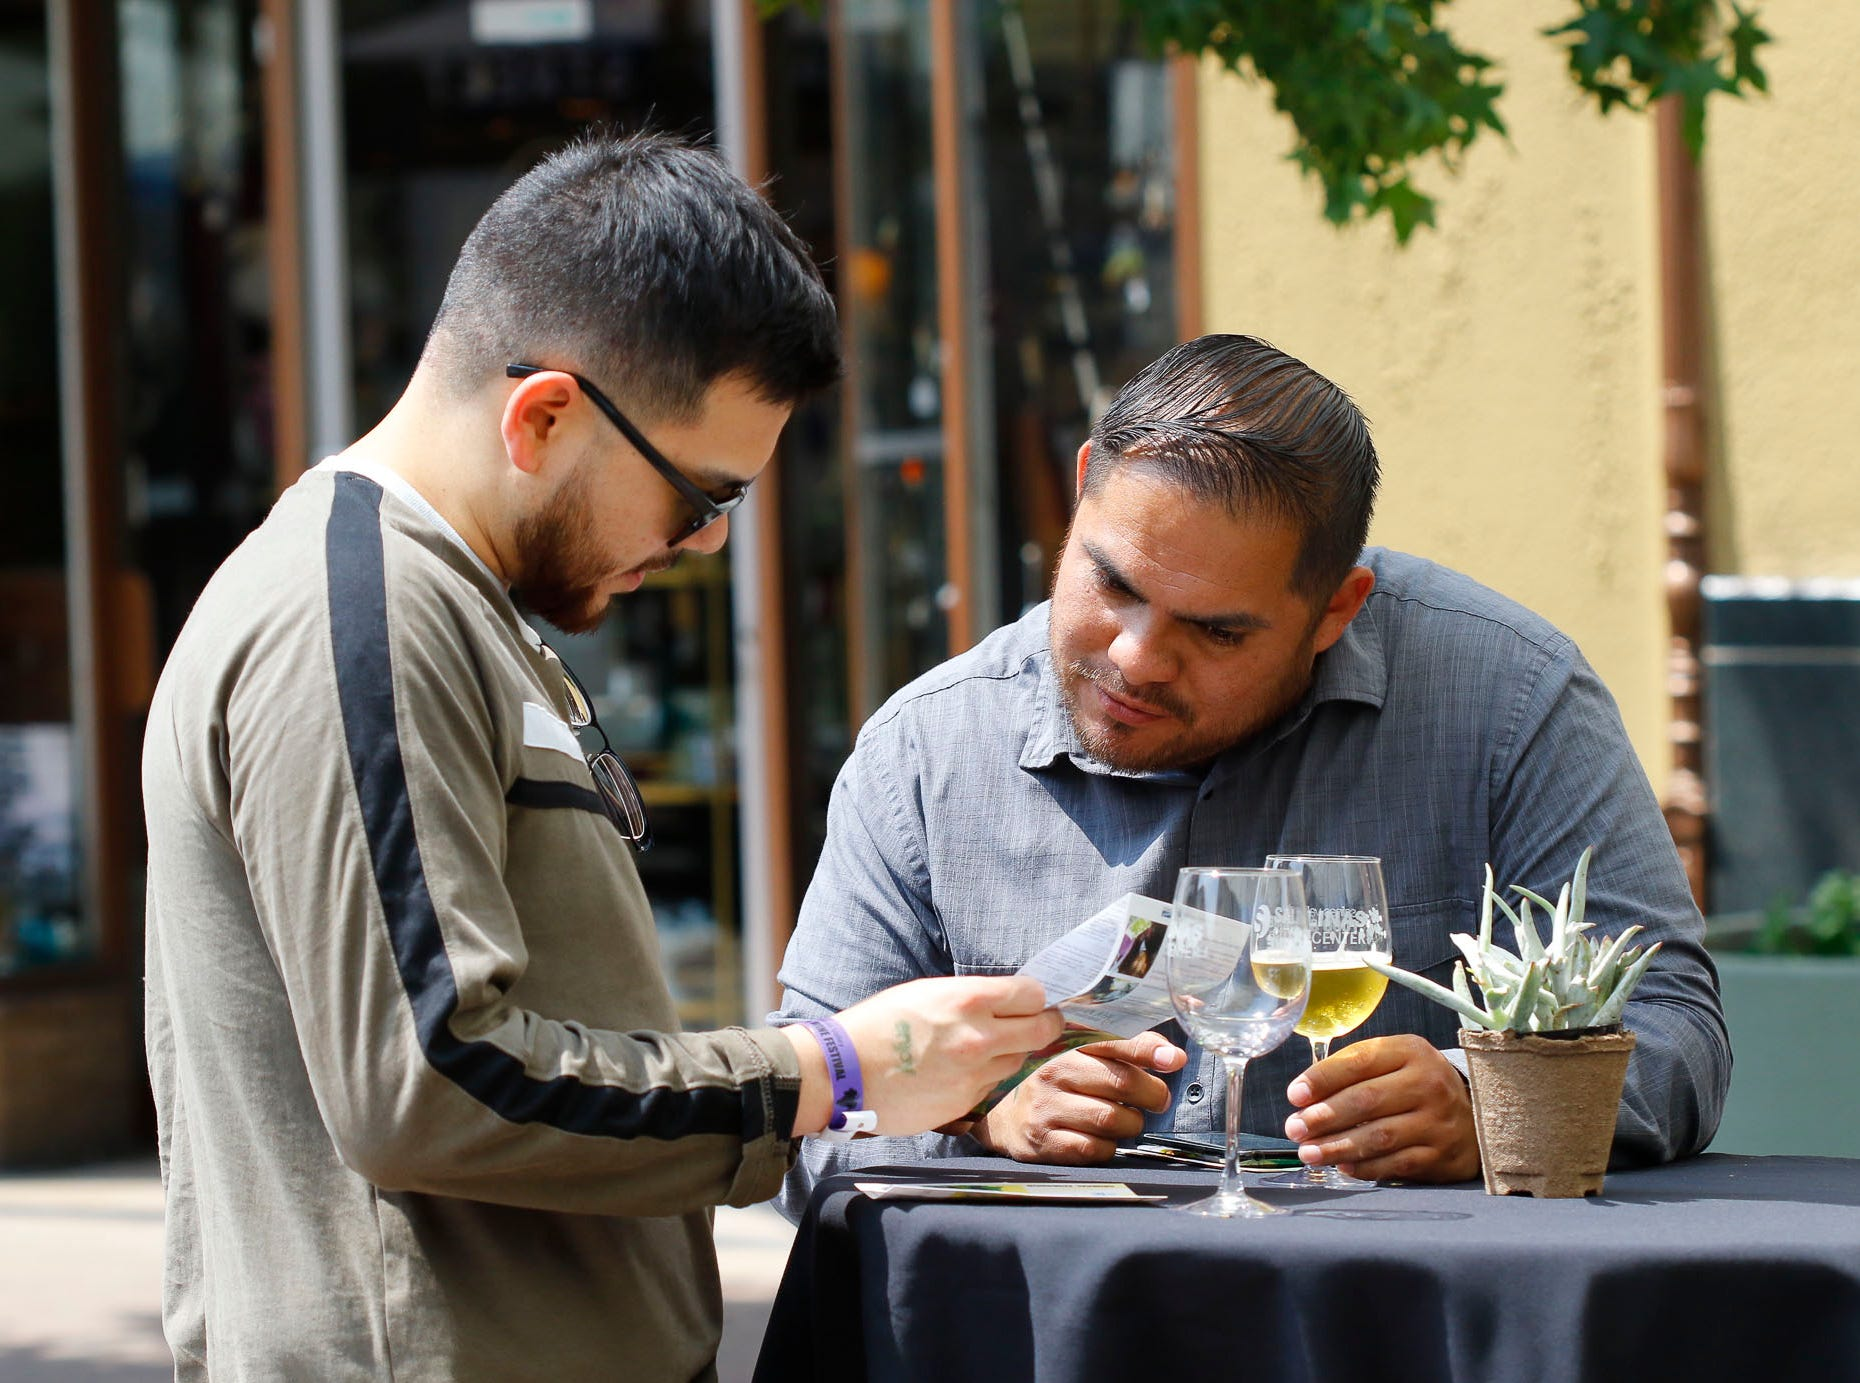 Attendees look over a brochure during the 2018 Salinas Valley Food and Wine Festival which takes place on Main Street in Old Town Salinas on Saturday, August 11, 2018.